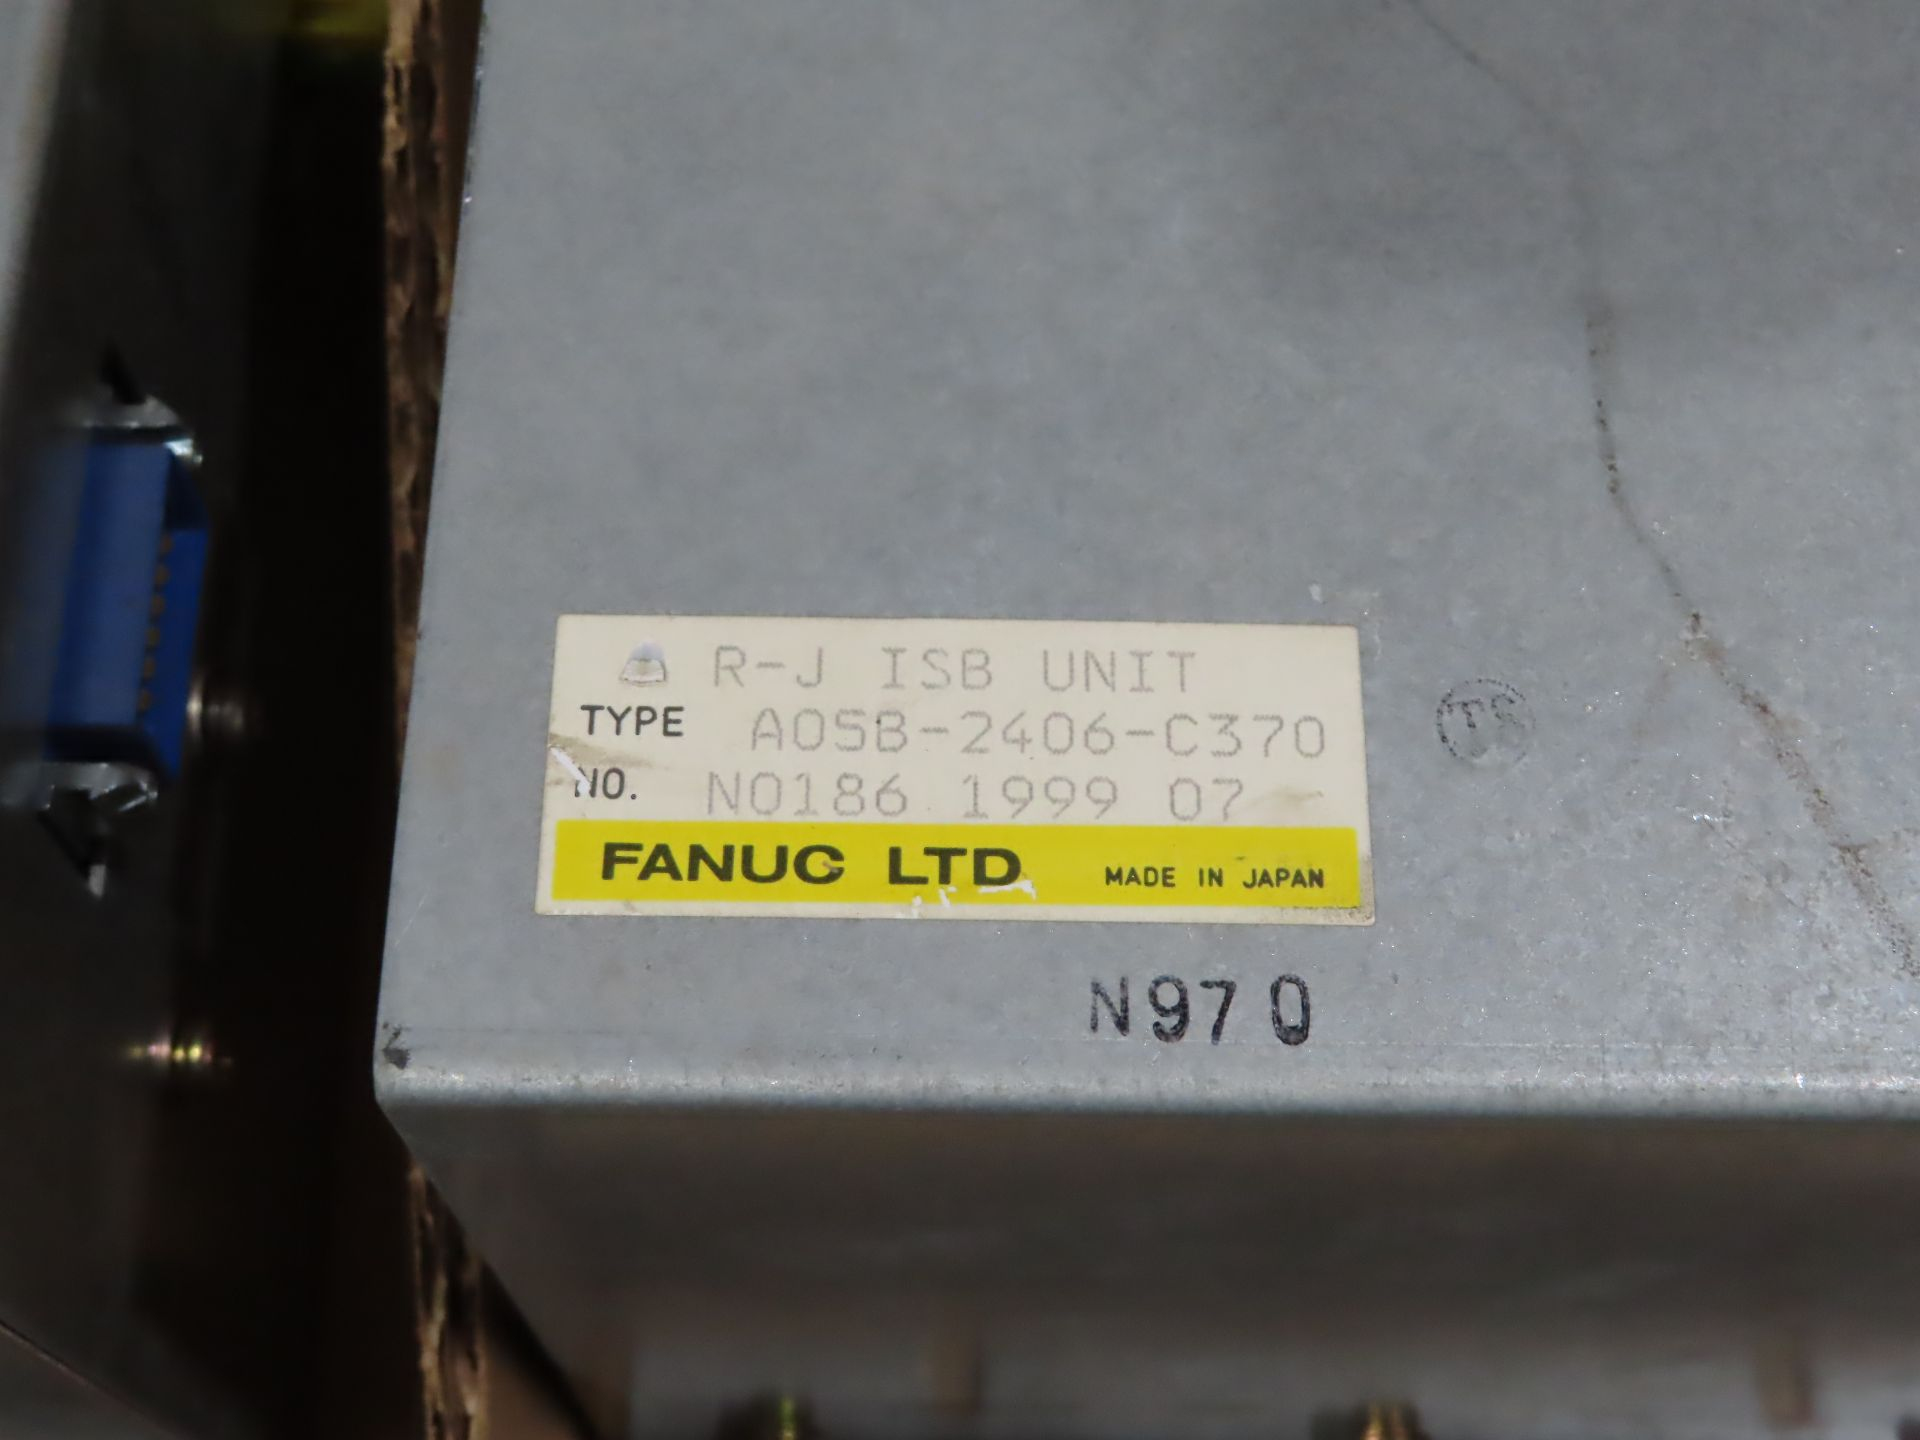 Lot 102 - Fanuc ISB unit model A05B-2406-C370, as always, with Brolyn LLC auctions, all lots can be picked